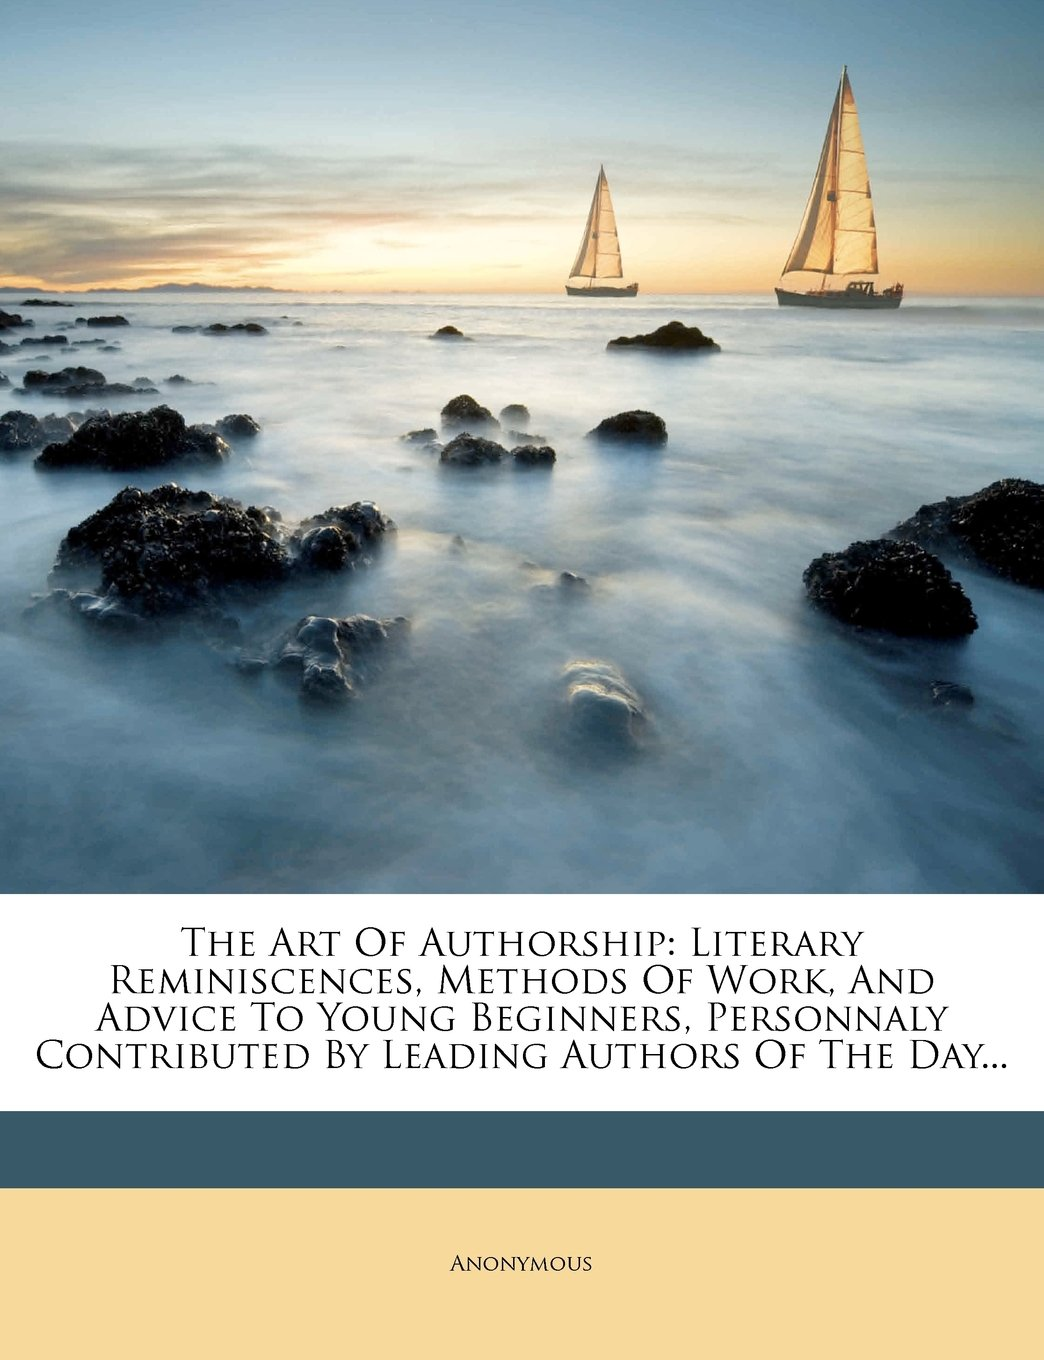 Read Online The Art Of Authorship: Literary Reminiscences, Methods Of Work, And Advice To Young Beginners, Personnaly Contributed By Leading Authors Of The Day... pdf